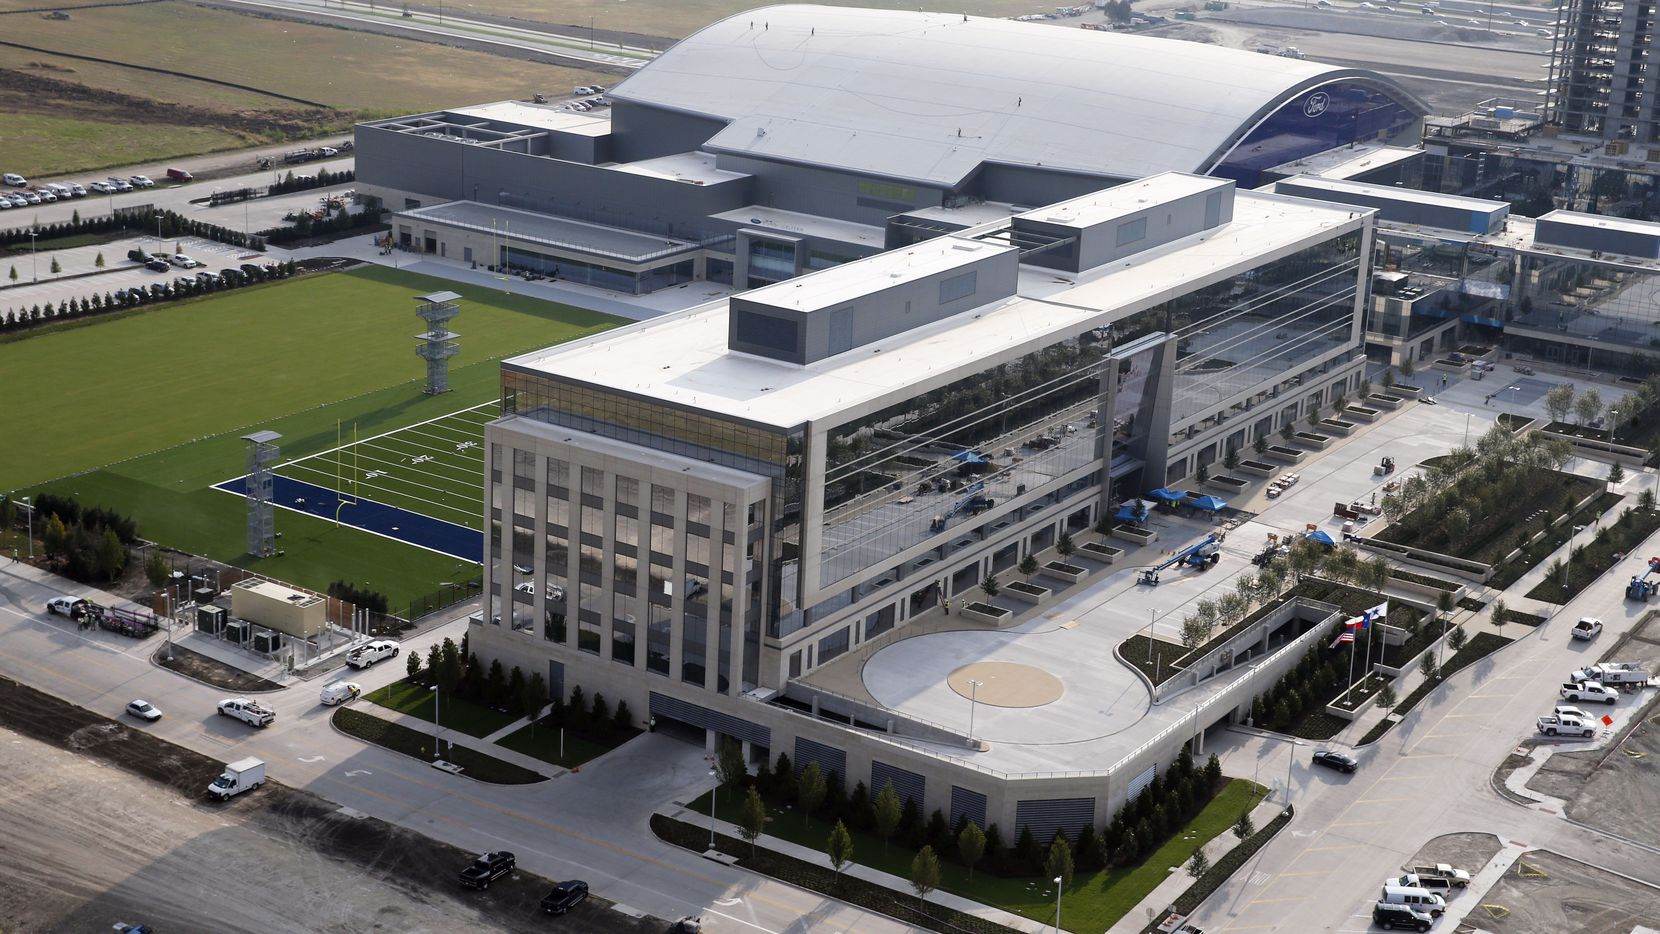 PlainsCapital Bank will have both office and retail operations at The Star in Frisco development by the Dallas Cowboys.